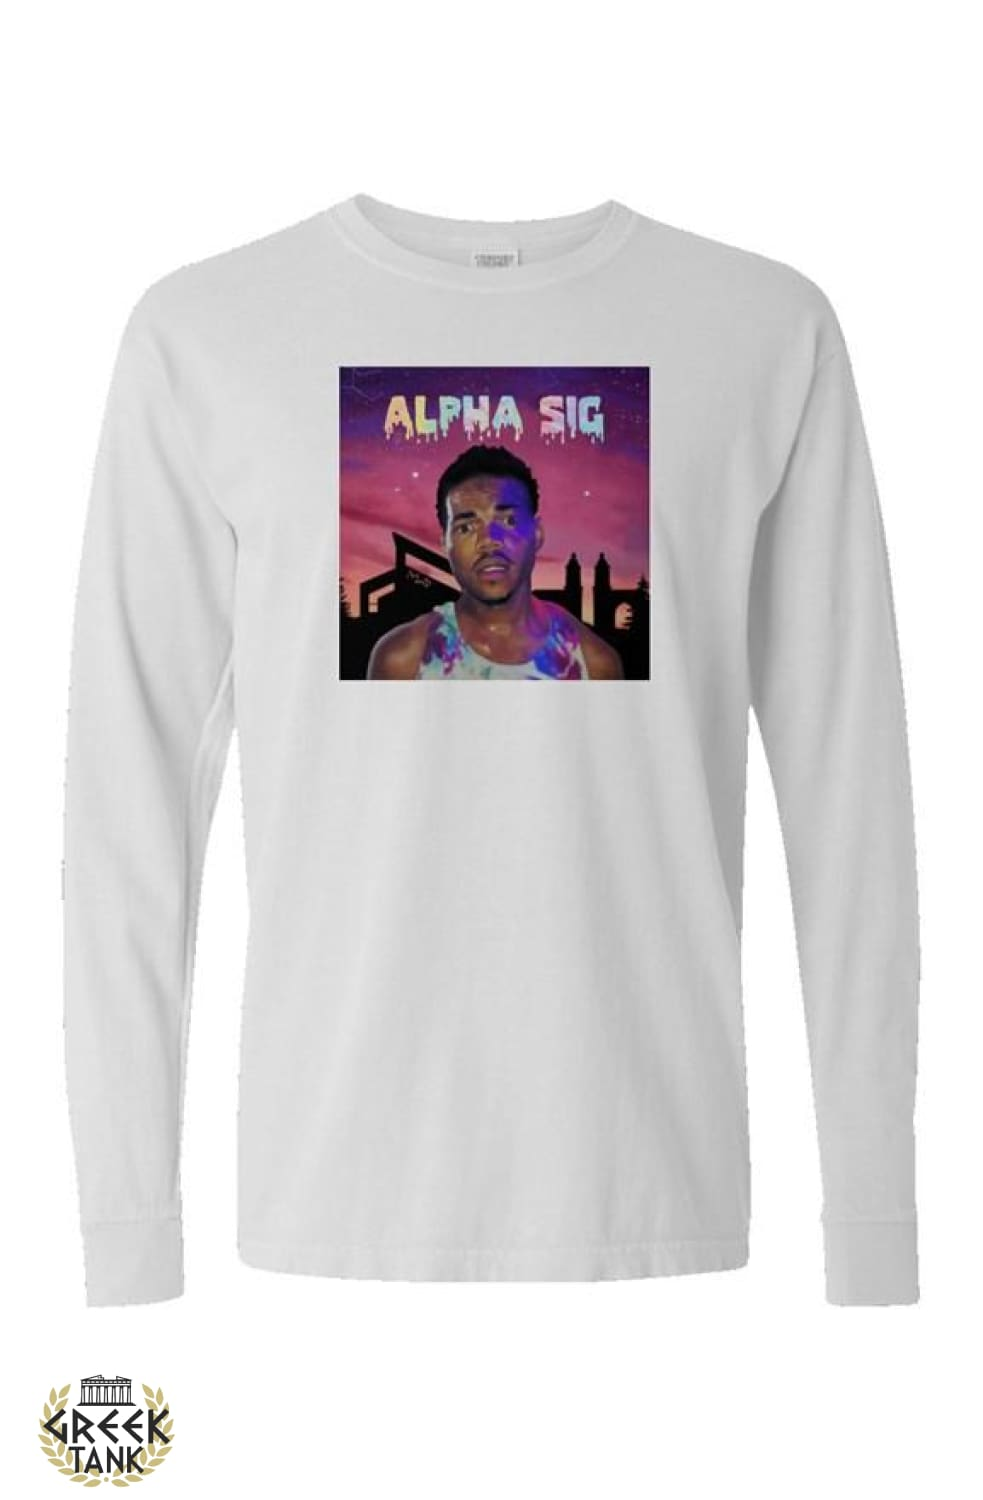 alphasig longsleeve chance